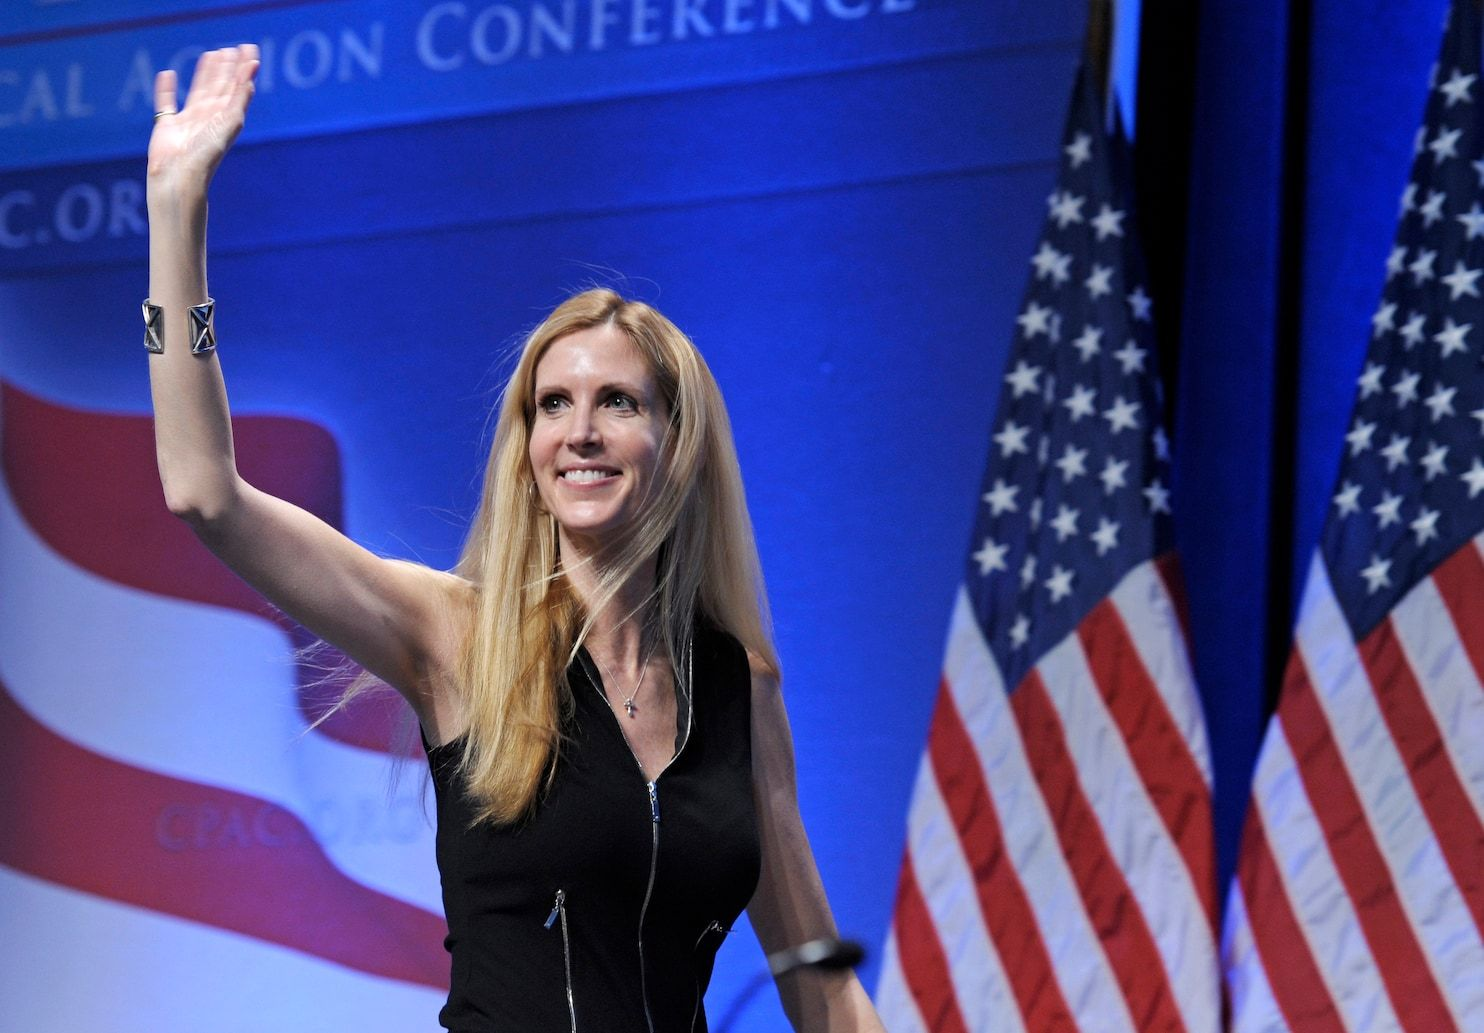 I invited Ann Coulter to speak at UC Berkeley. Here's why. - Washington Post